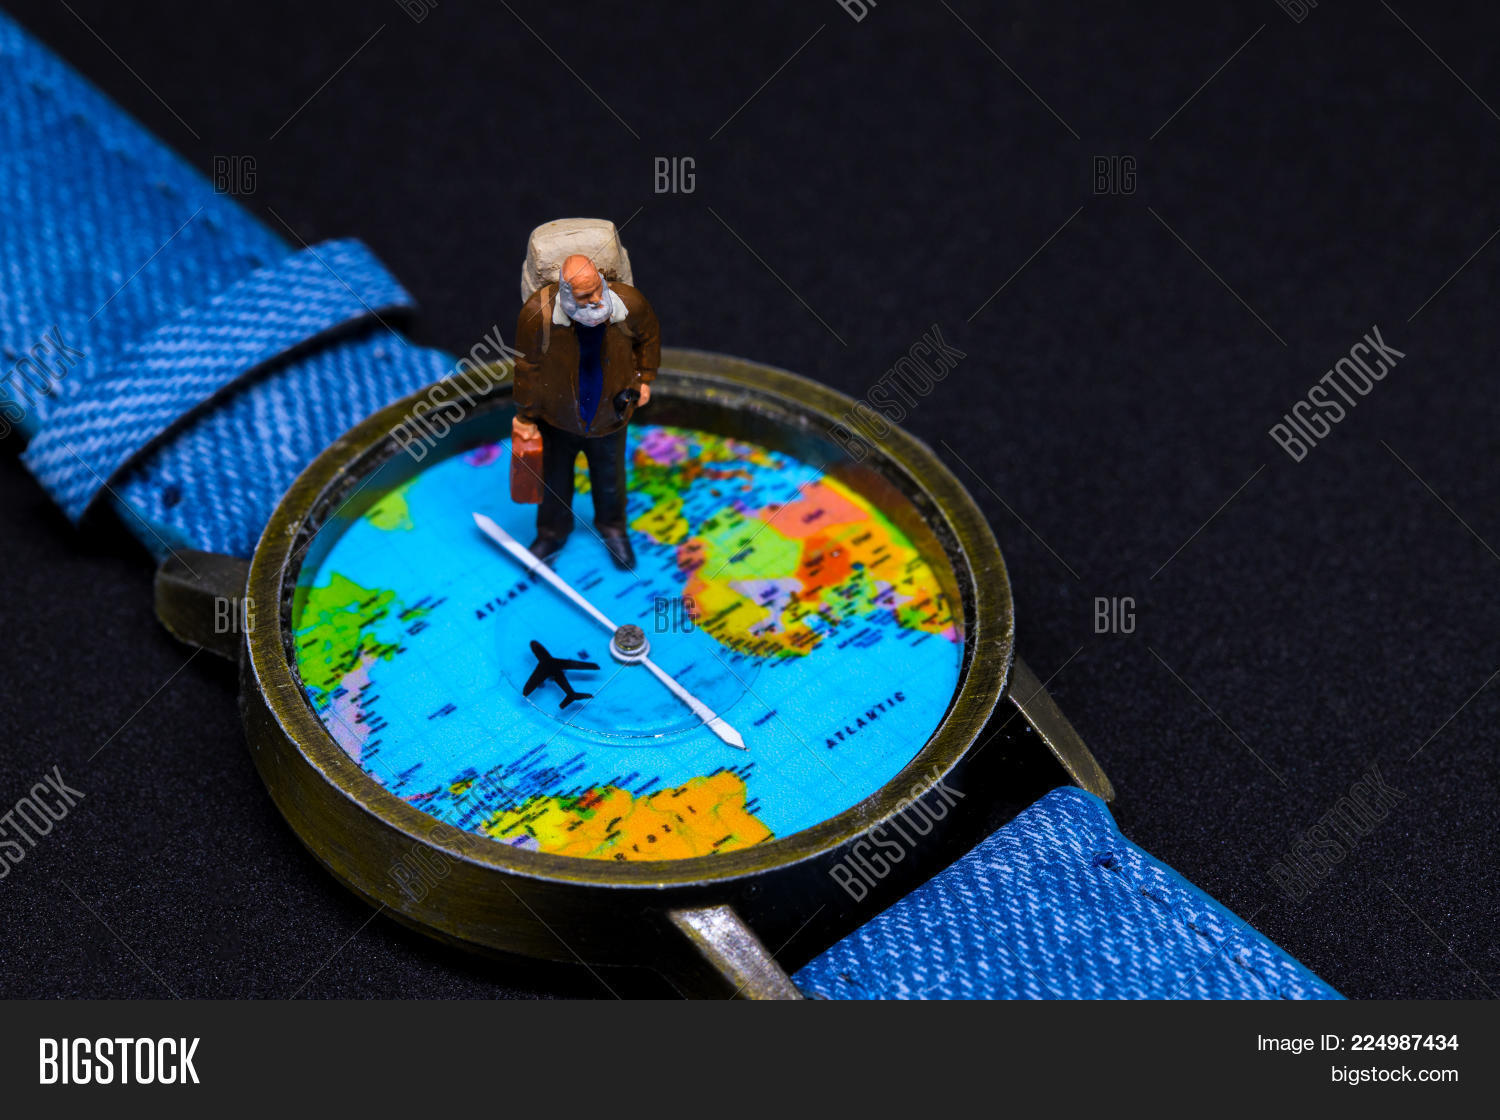 Old man backpack world image photo free trial bigstock old man with backpack and world map watches around world travel photo banner senior gumiabroncs Images